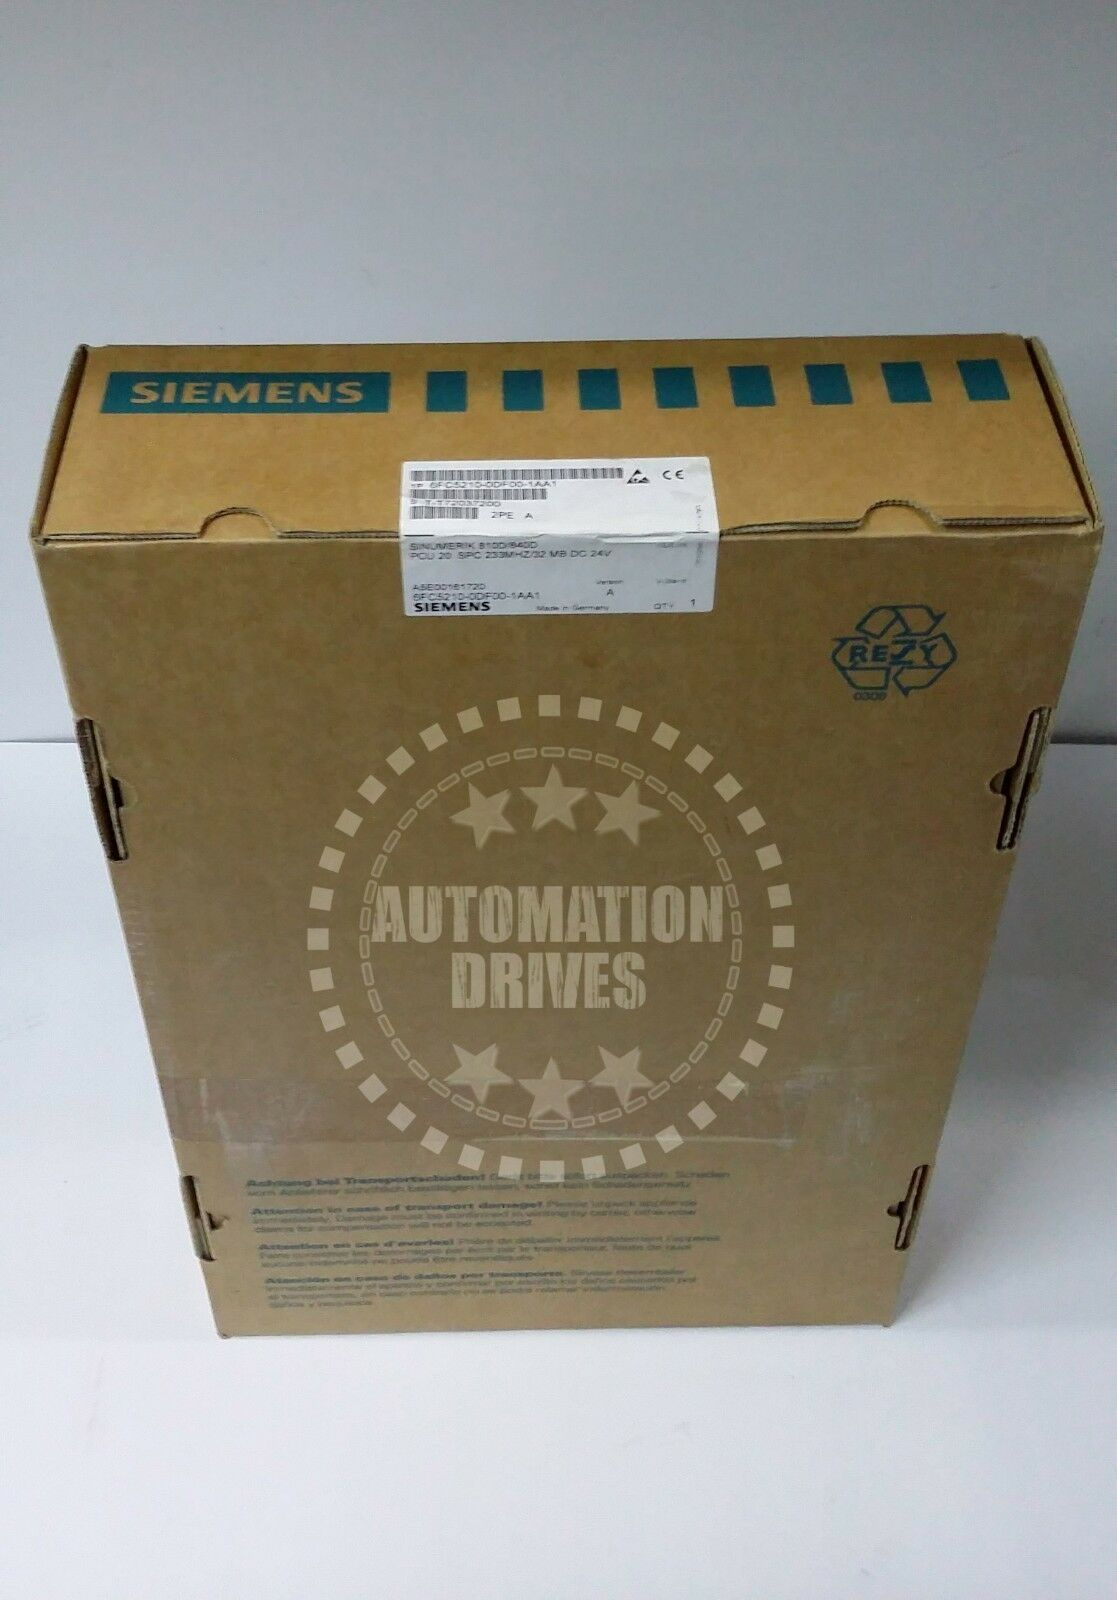 **NEW IN SEALED BOX** SIEMENS SINUMERIK PCU 20 810D/840D 6FC5210-0DF00-1​AA1 NIB